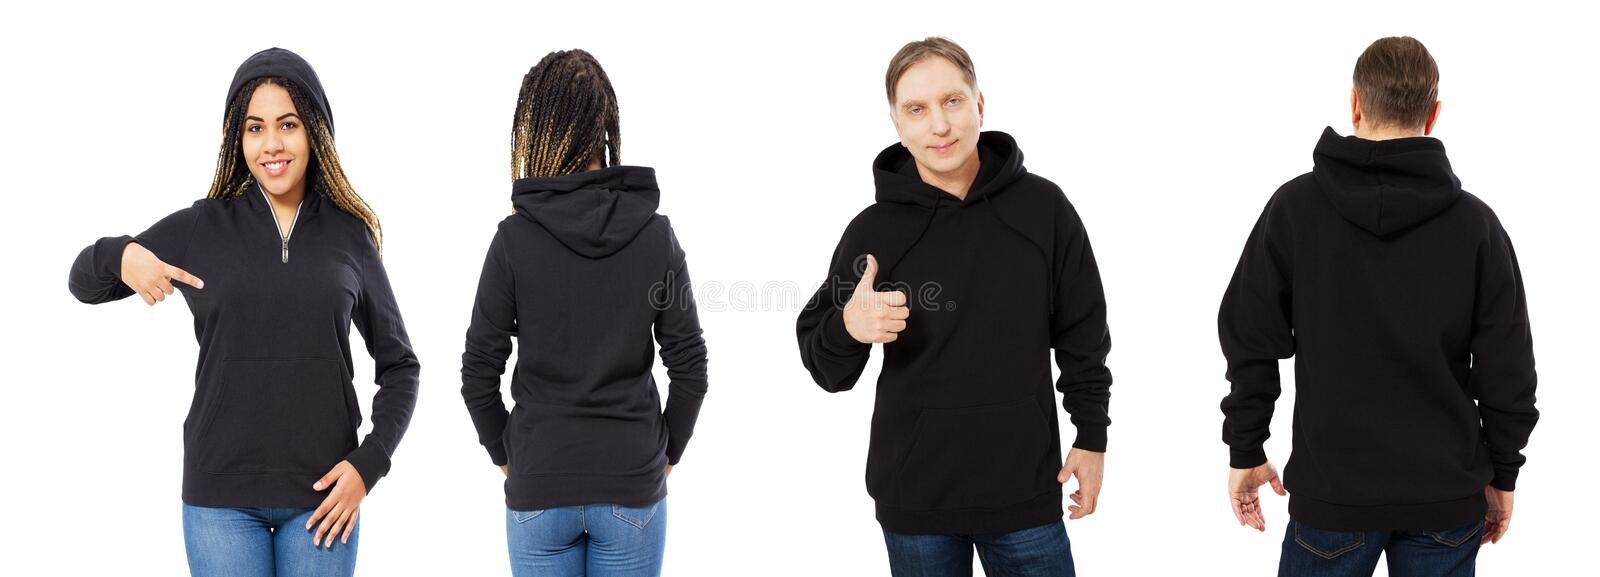 A girl in a black sweatshirt with a hood and a man in a sweatshirt front and back isolated, hoodie mockup empty stock images